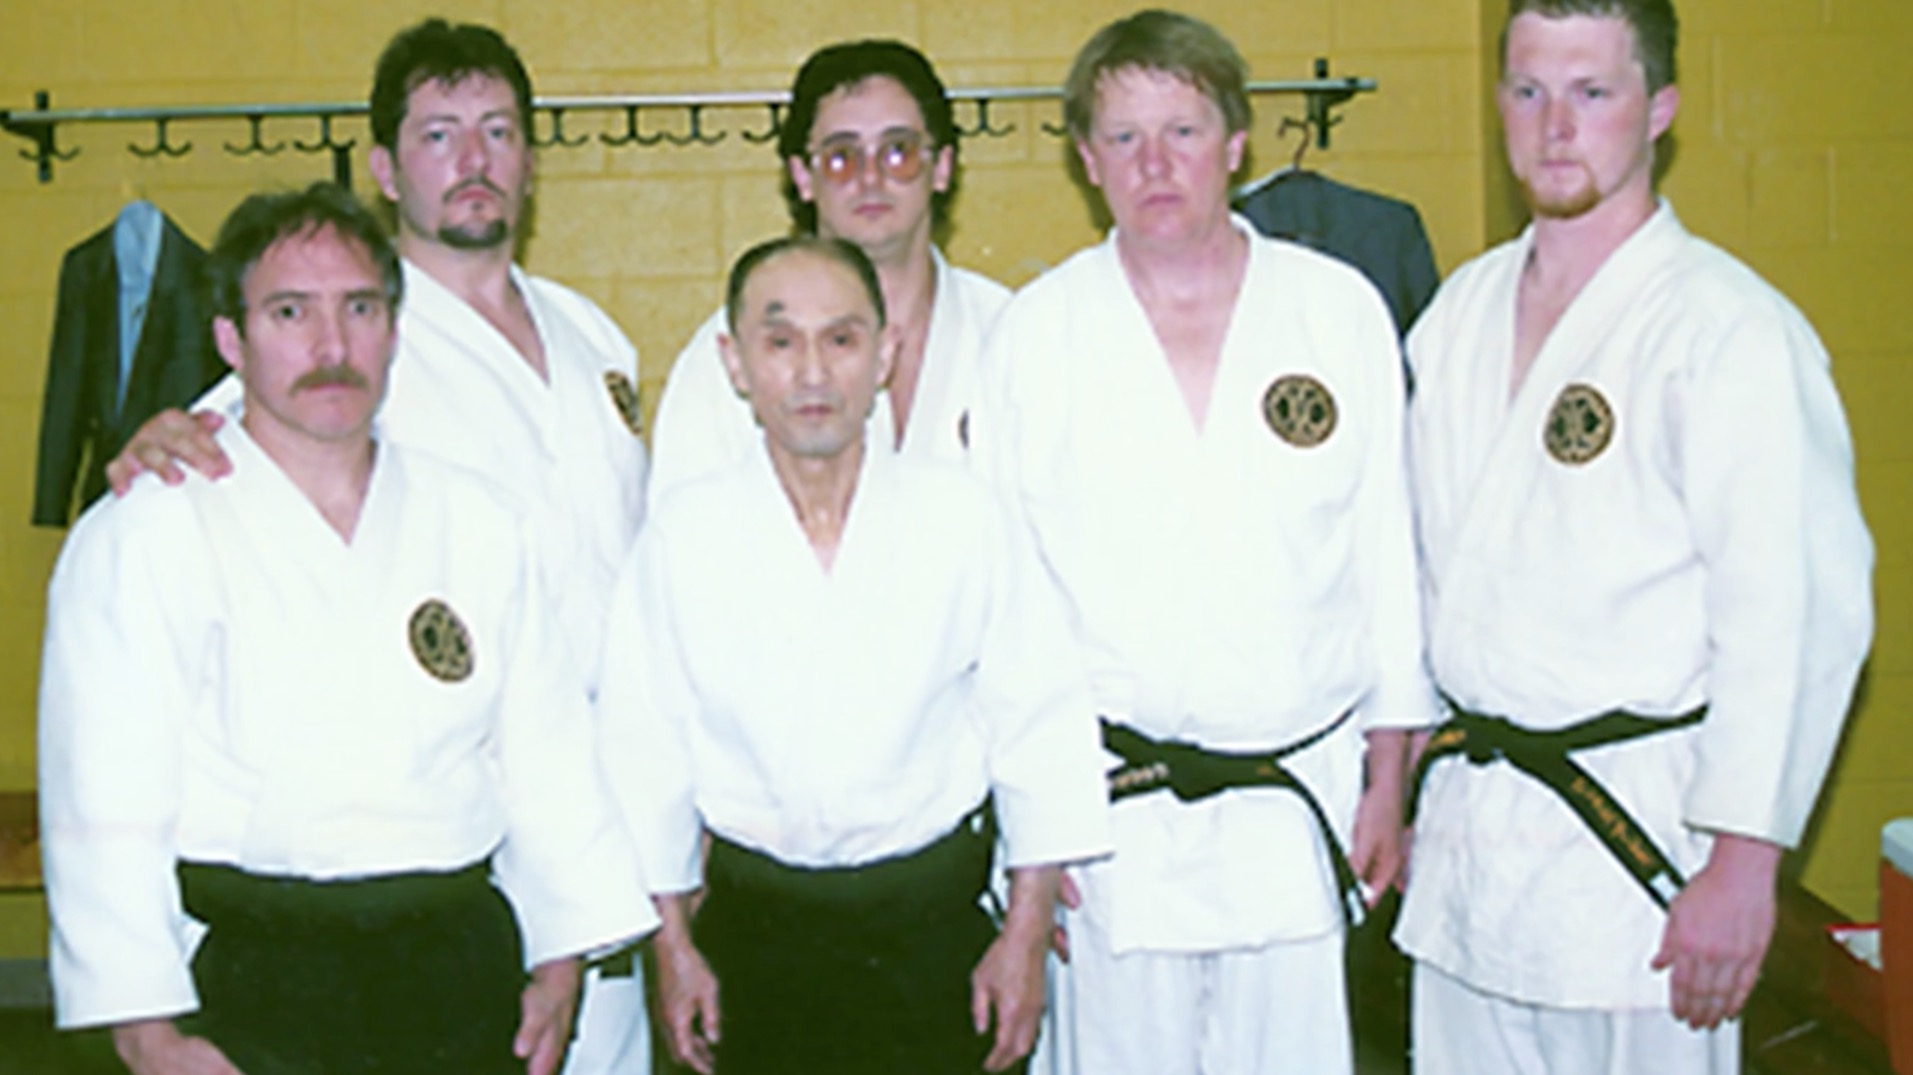 Goldberg Sensei with Gozo Shioda, founder of Yoshinkan Aikido.